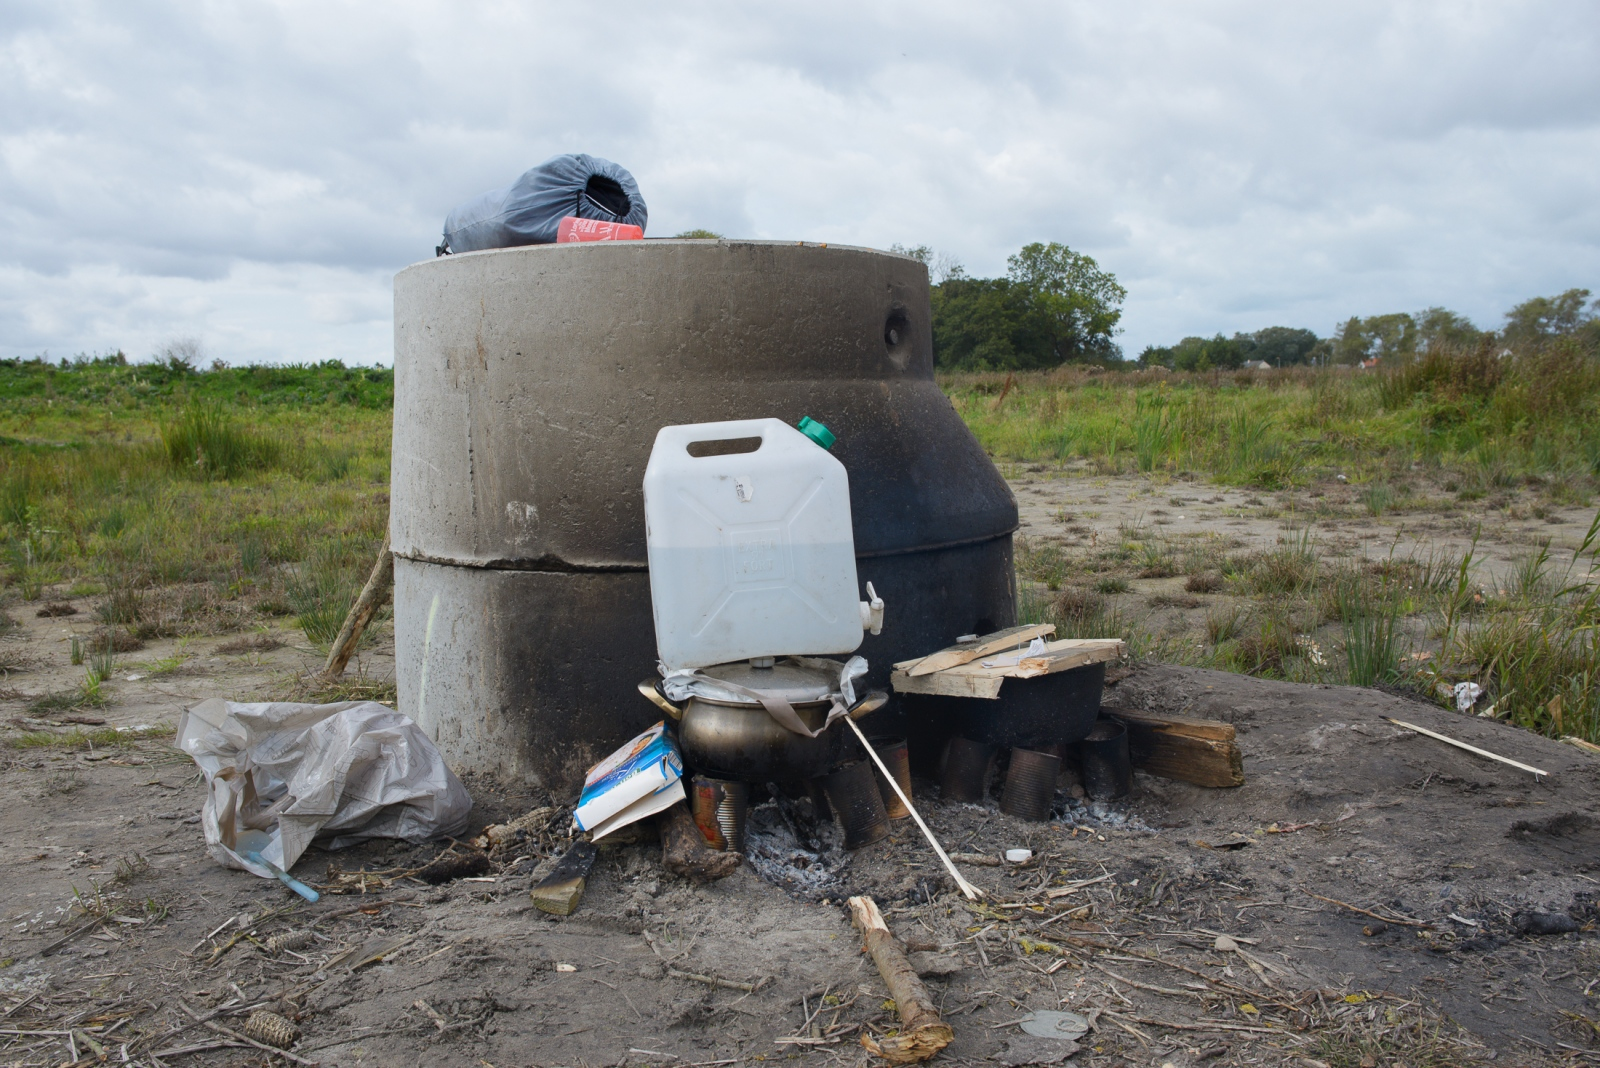 October 4, 2017 - Calais, France. The pot (pictured) contains rice being cooked by Afghan refugees. Cooking has become more complicated for migrants due to the lack of access to water and the continuous tear gassing and destruction of personal belongings by the French National Police (CRS).